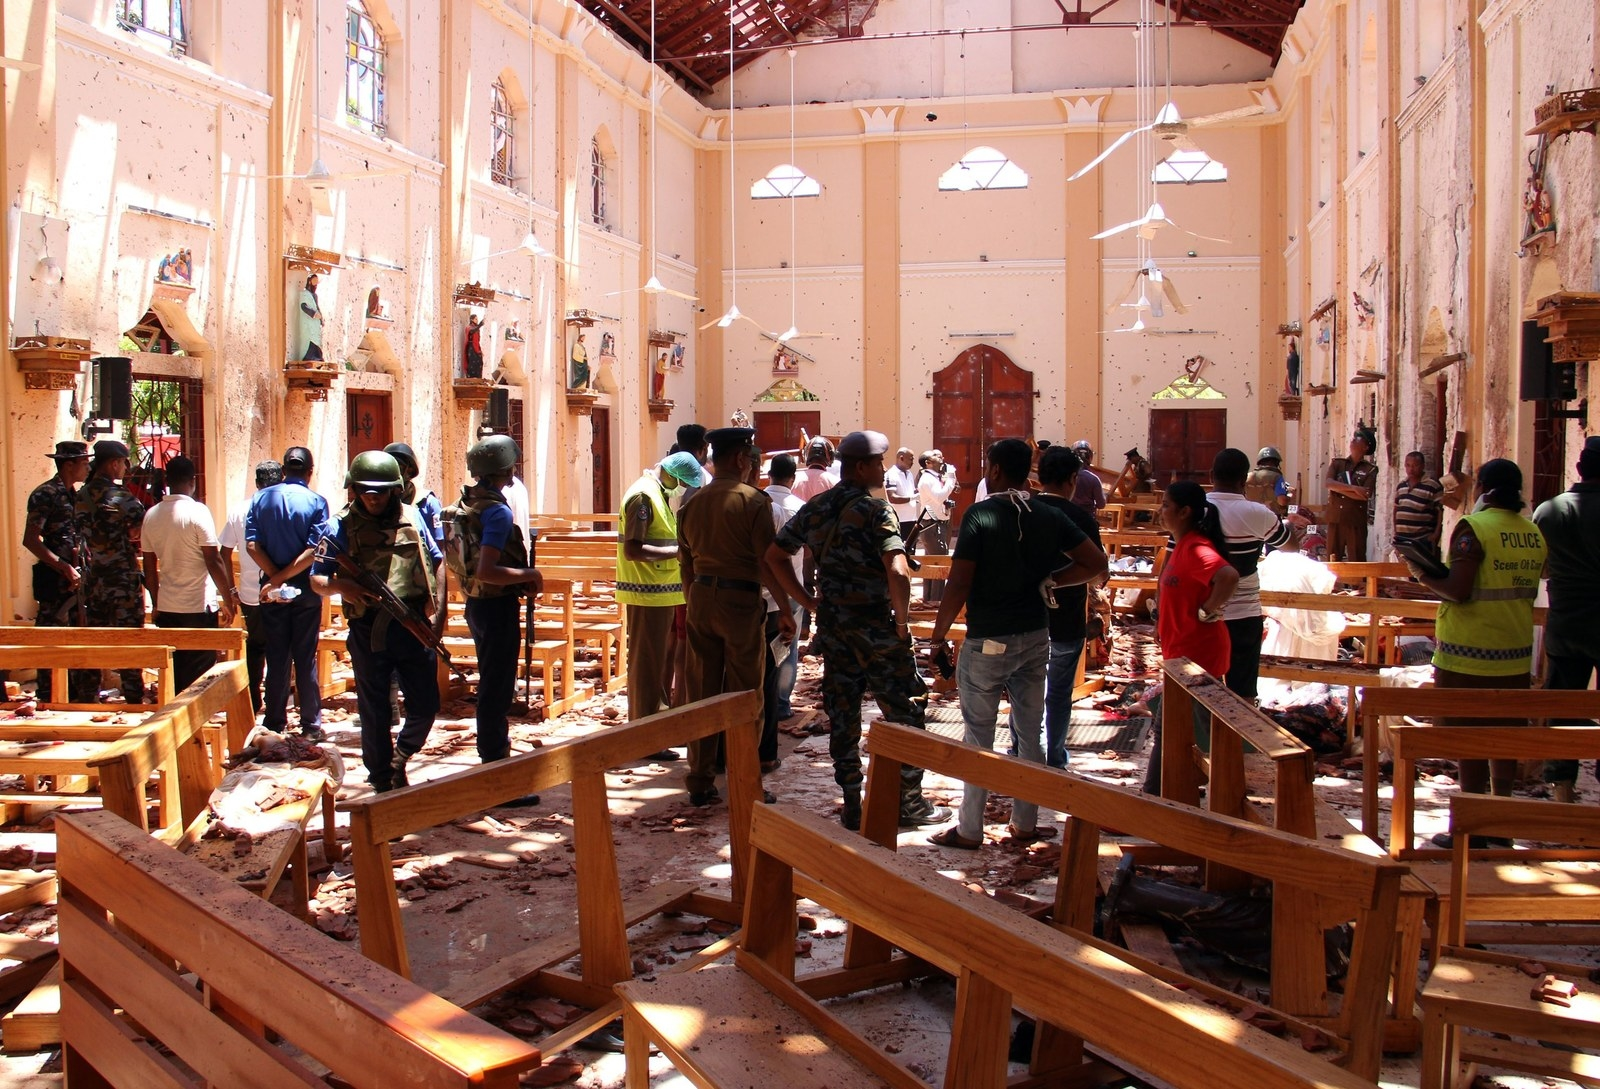 Easter Sunday Explosions In Sri Lanka Have Killed More Than 200 People And Injured Hundreds More